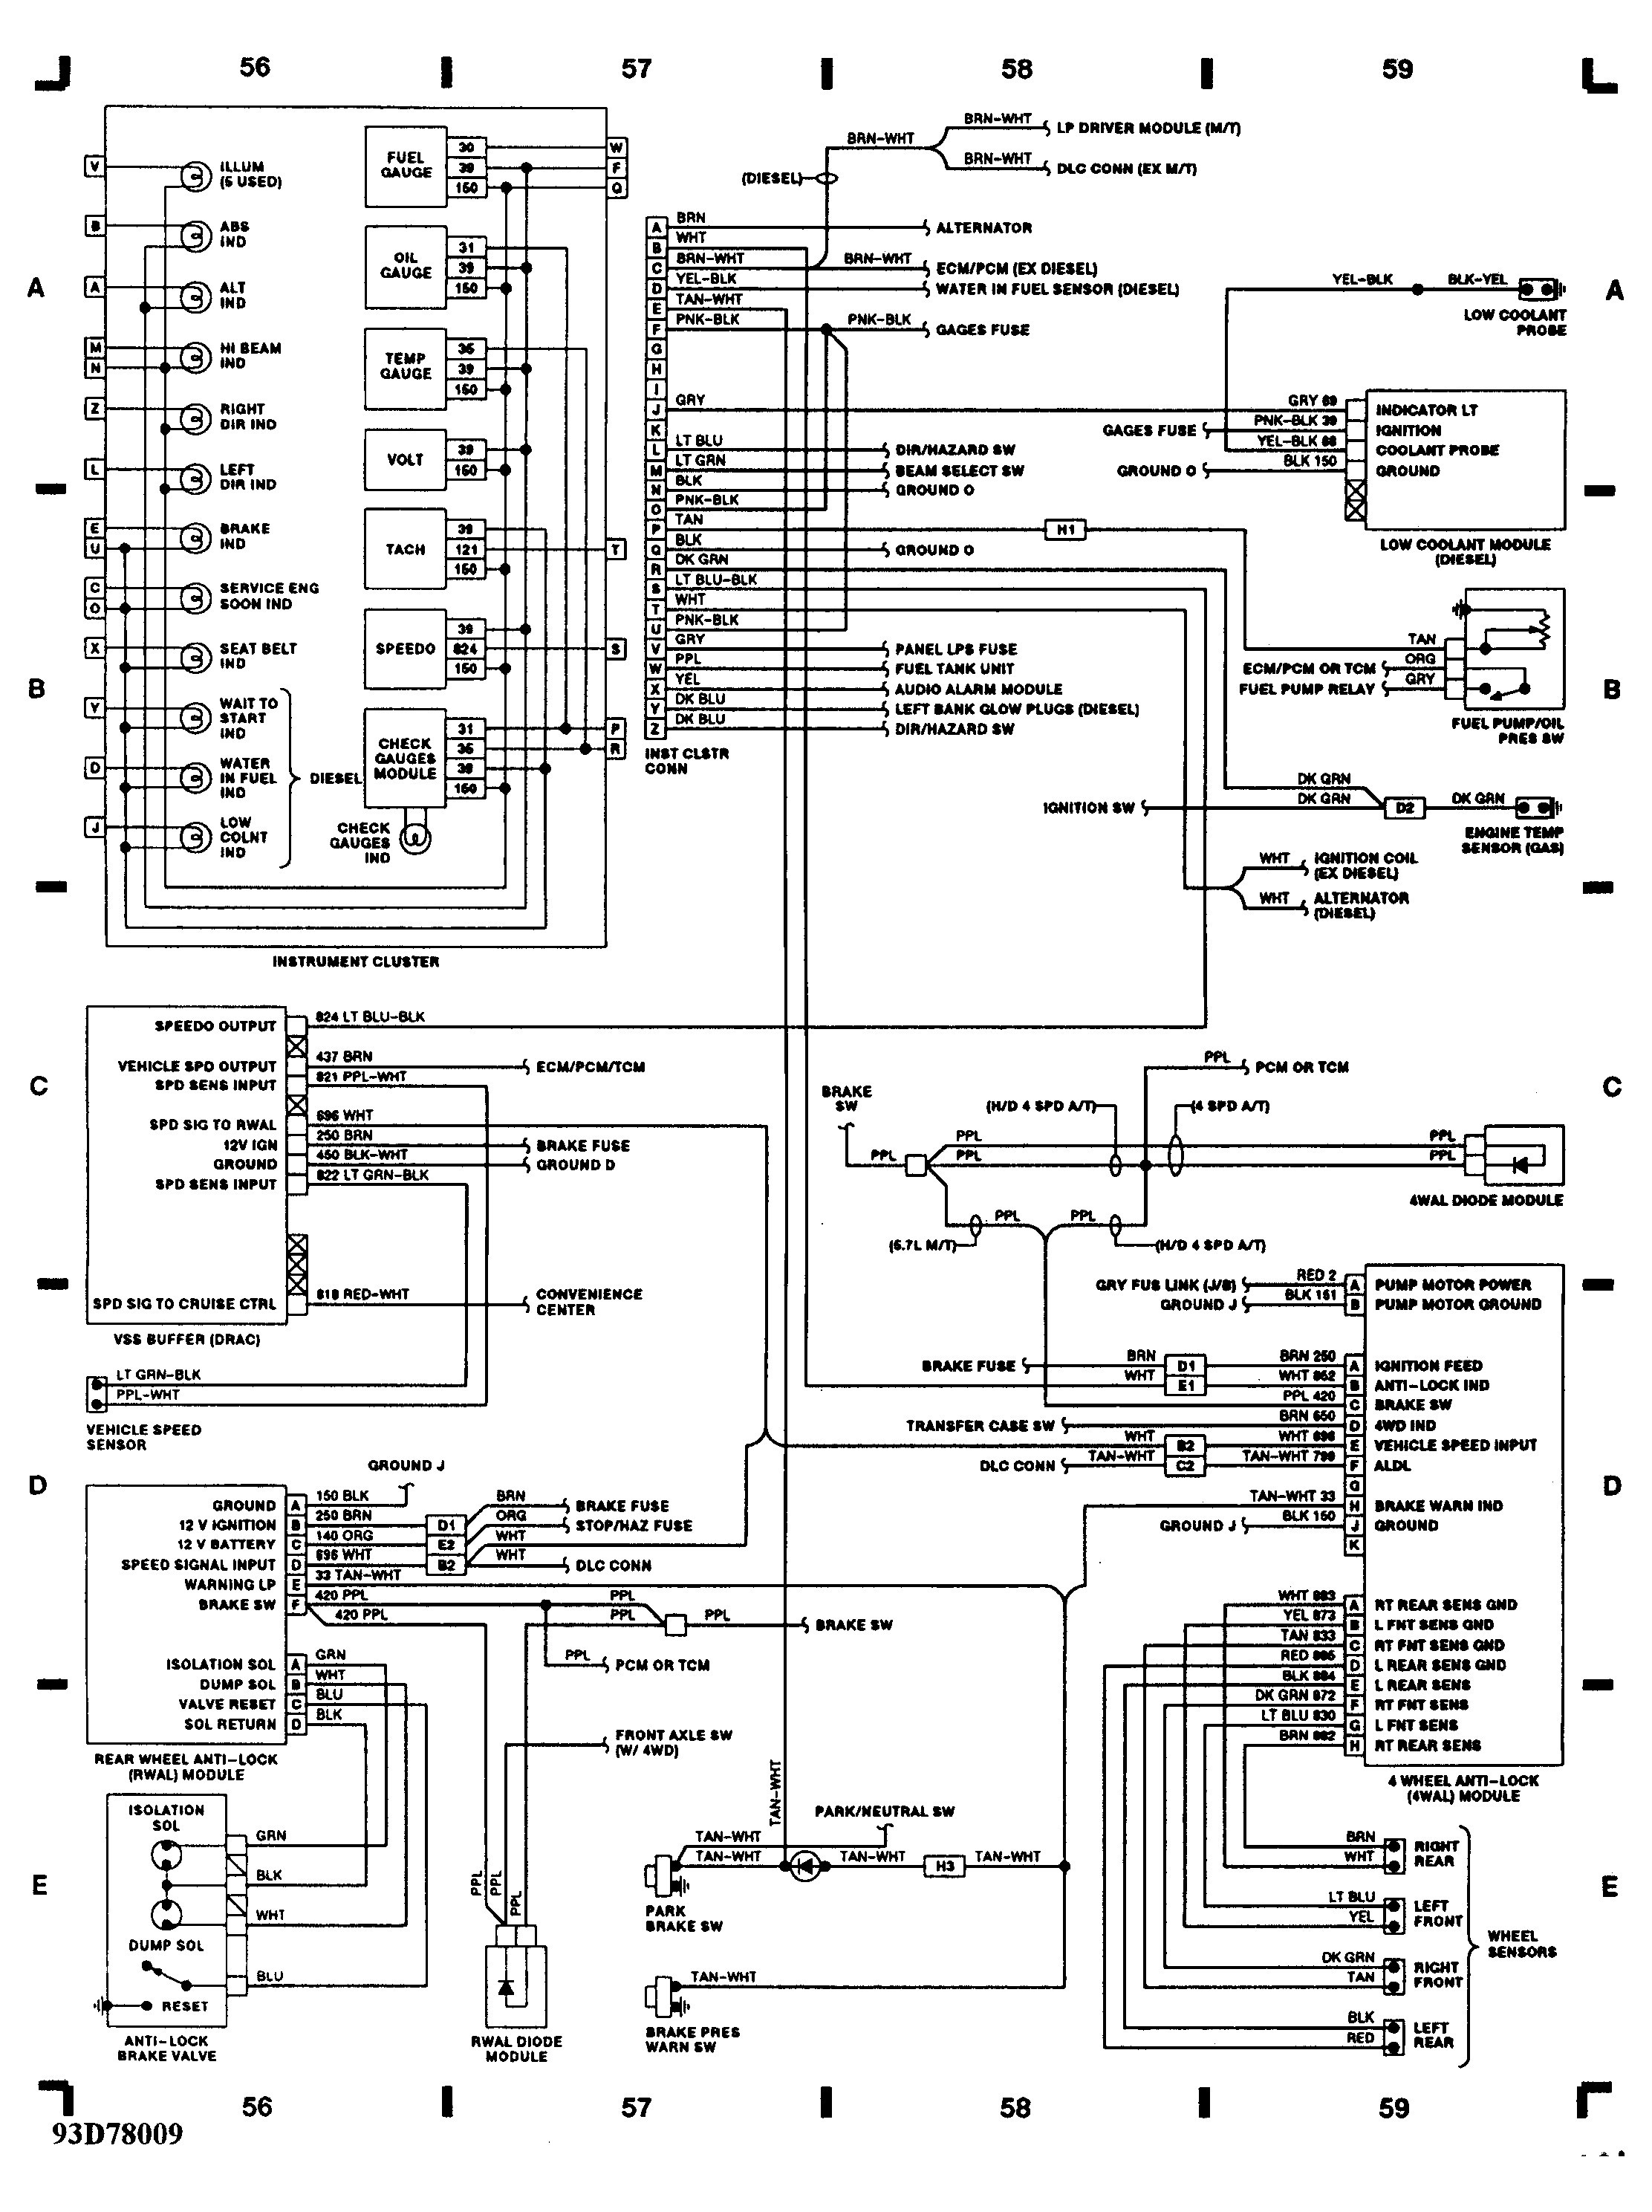 1995 Chevy Tbi Wiring Diagram - Honda Gx390 Wiring Diagram for Wiring  Diagram SchematicsWiring Diagram Schematics